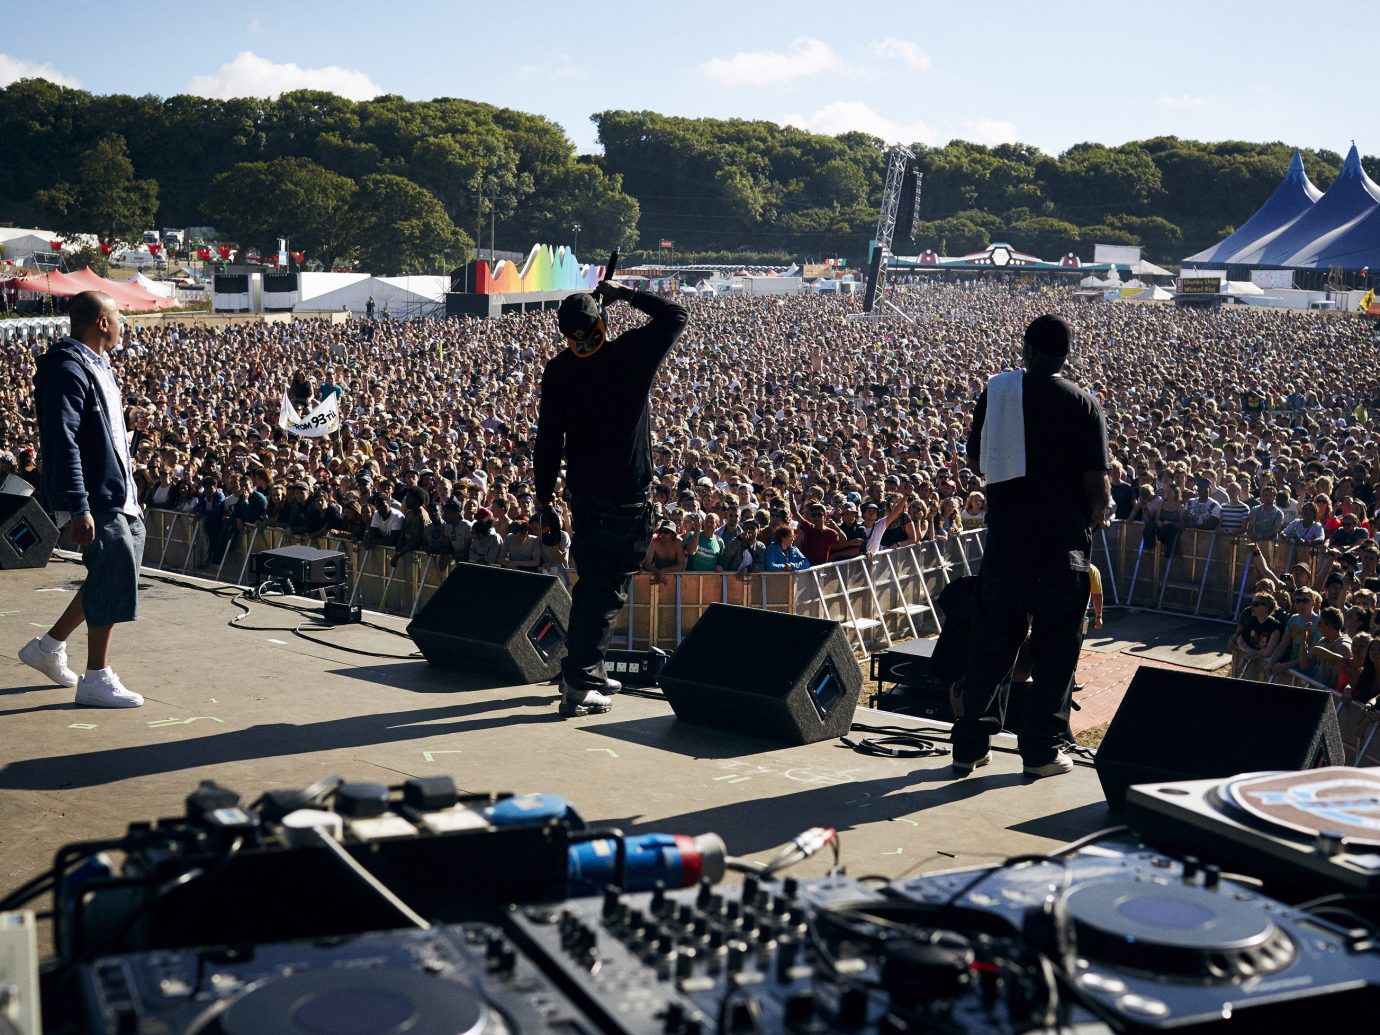 Arts + Culture sky outdoor crowd people person musician military several